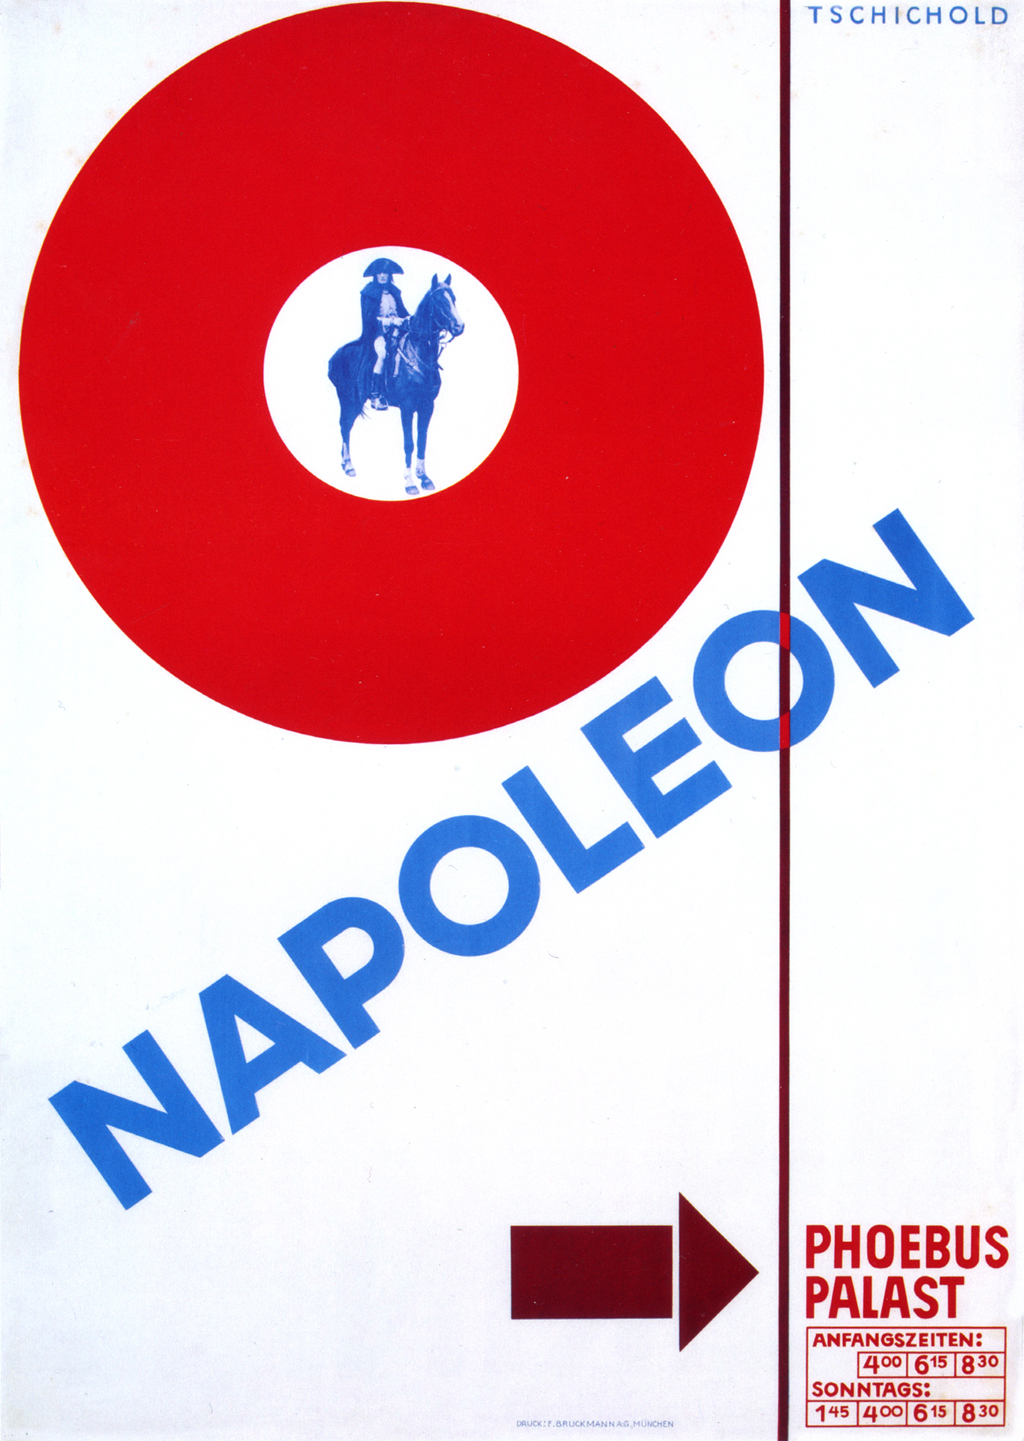 Napoleon poster by Jan Tschichold for the Phoebus-Palast (1927). The title has been handlettered, a fact that is not obvious in reduced size reproductions.